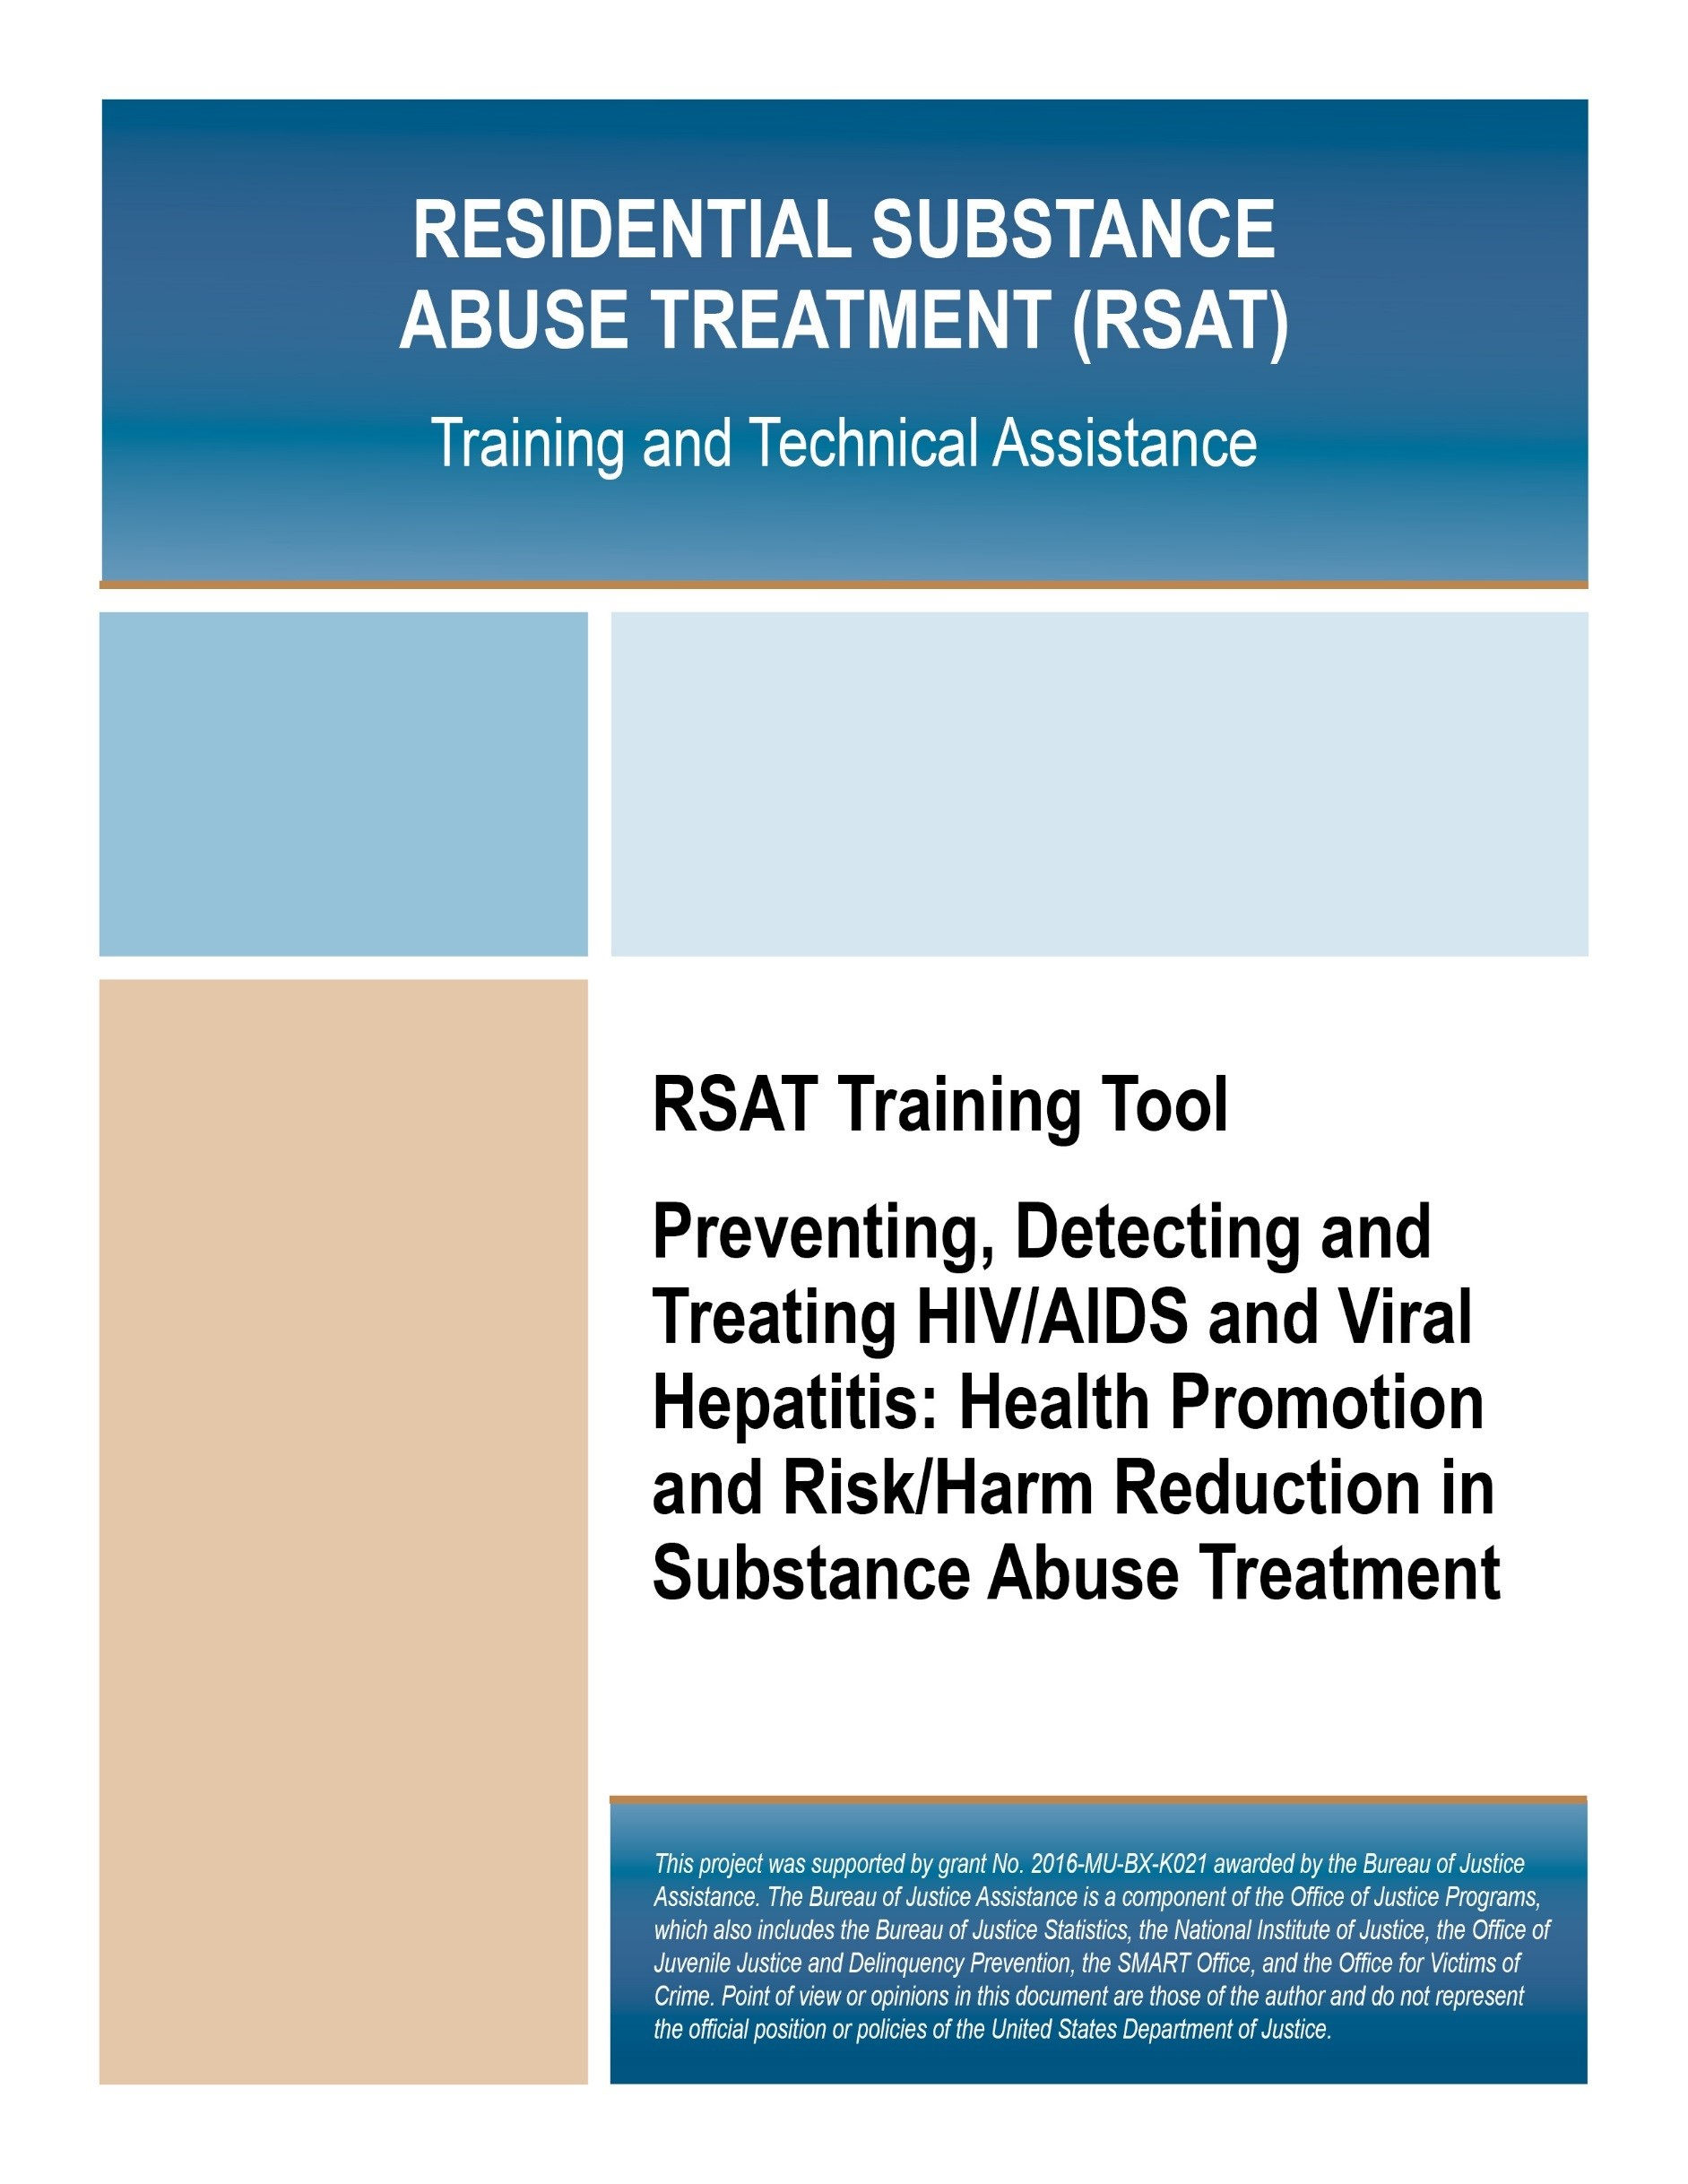 Preventing, Detecting and Treating HIV/AIDS and Viral Hepatitis: Health  Promotion and Risk/Harm Reduction in Substance Abuse Treatment